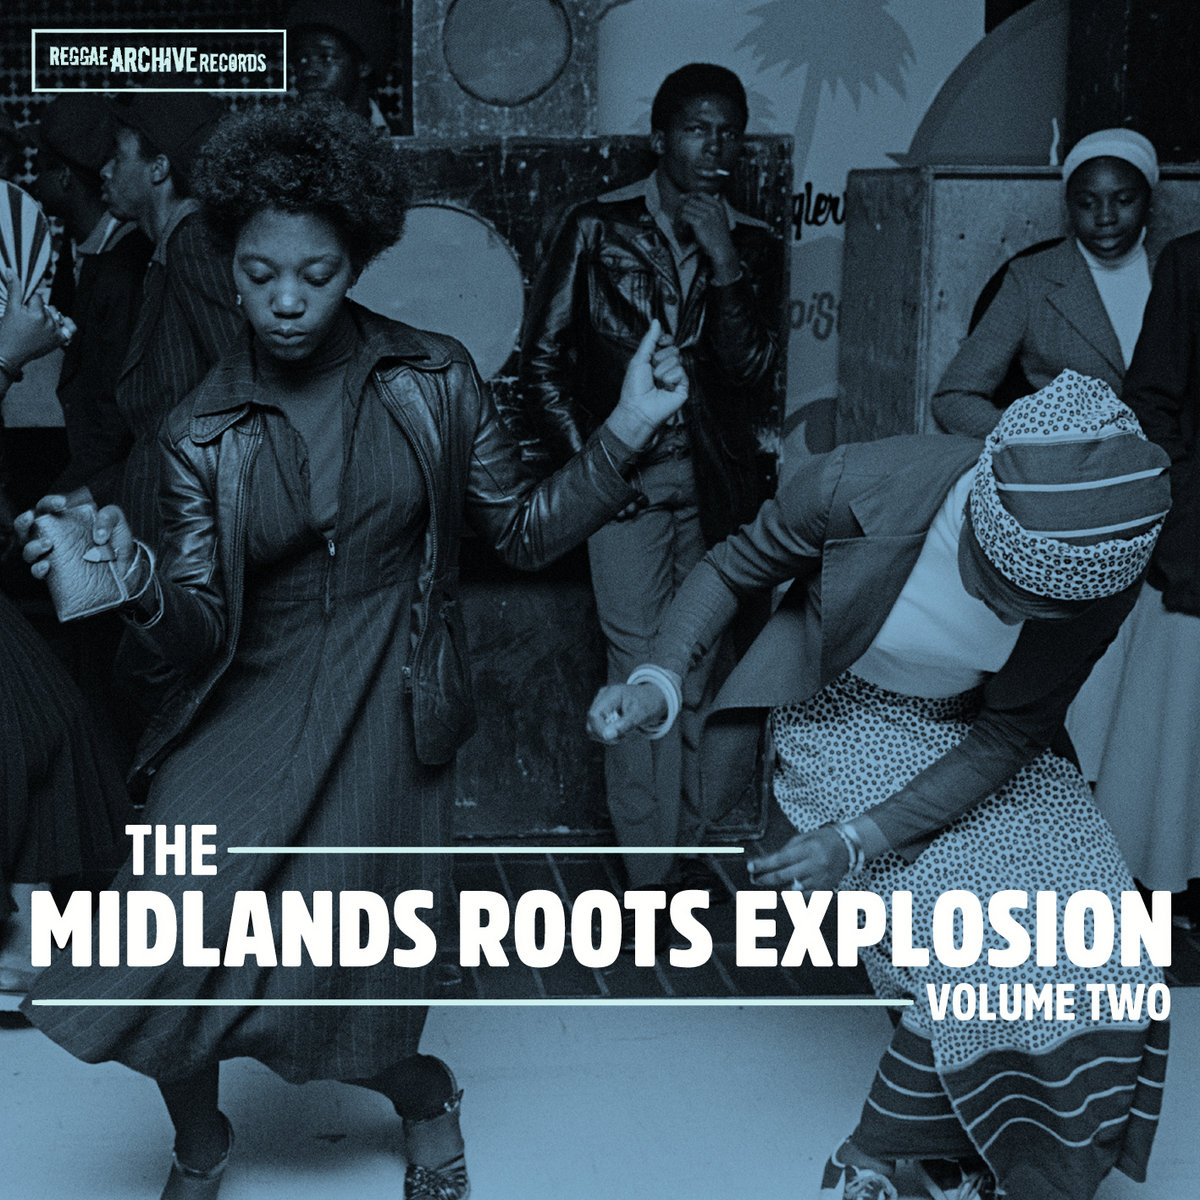 The Midlands Roots Explosion Volume Two | Reggae Archive Records